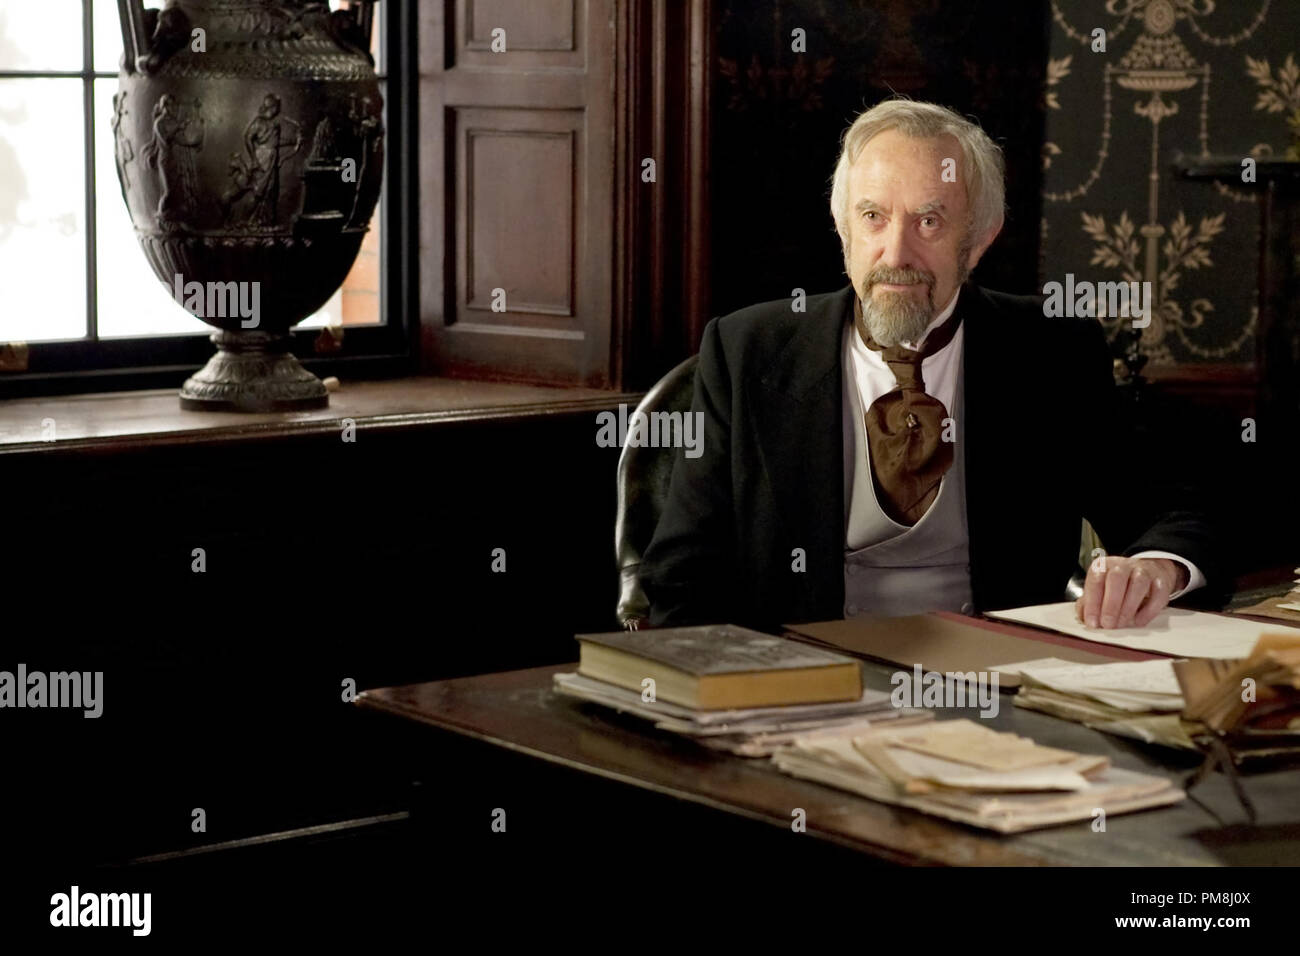 Jonathan Pryce stars as Dr. Dalrymple in Sony Pictures Classics' Hysteria (2012). Photo credit by Ricardo Vaz Palma. - Stock Image